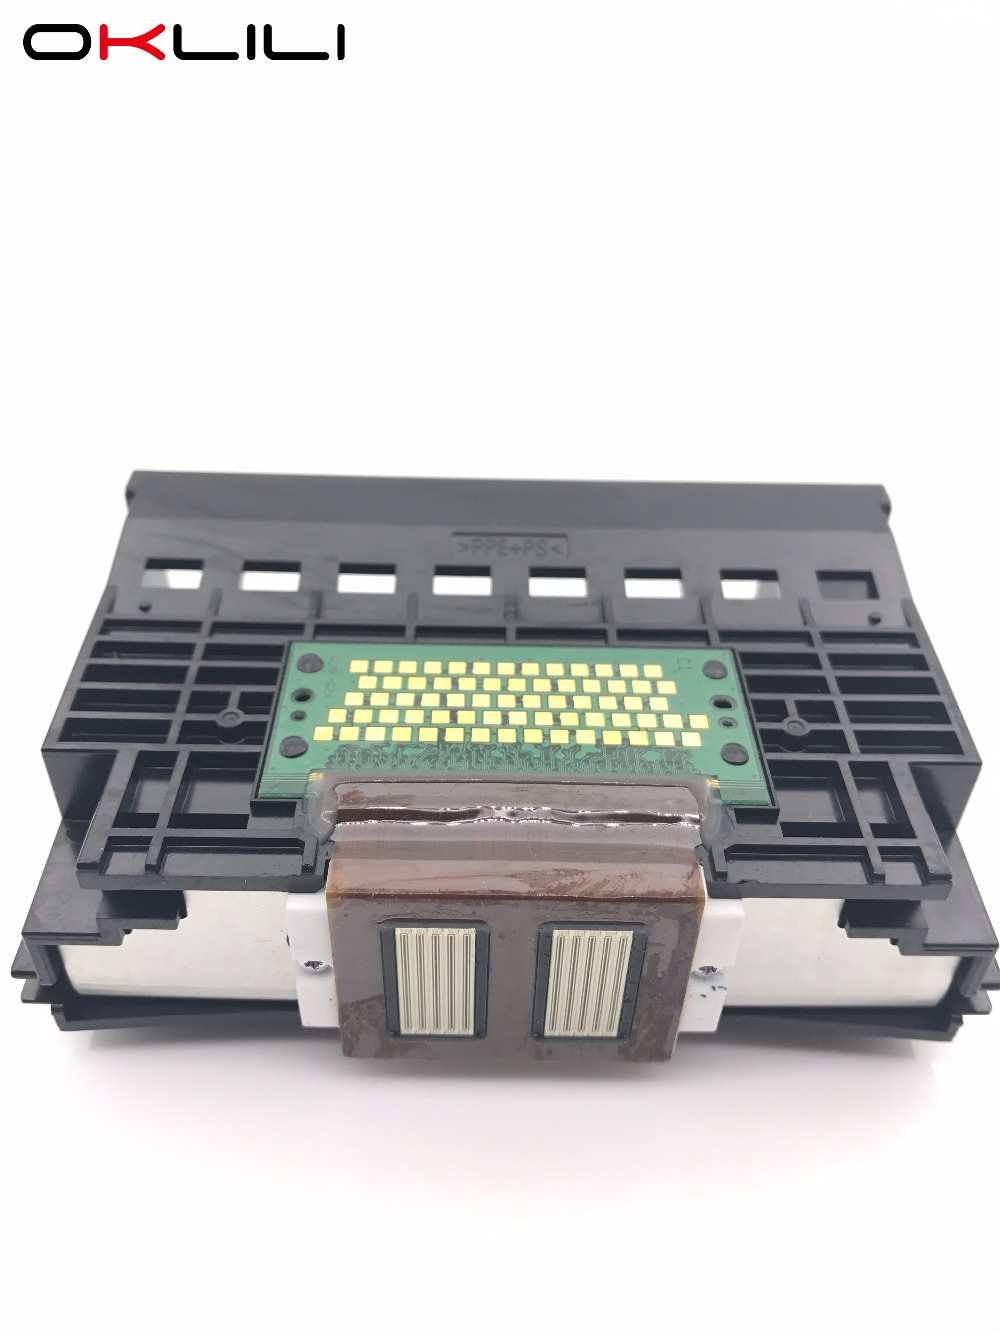 OKLILI ORIGINAL QY6-0053 QY6-0053-000 Printhead Print Head Printer Head for Canon PIXUS 990i i990 iP8100 original 990 a3 printhead print head printer head for brother mfc6490 mfc6490cw mfc5890 mfc6690 mfc6890 mfc5895cw printer